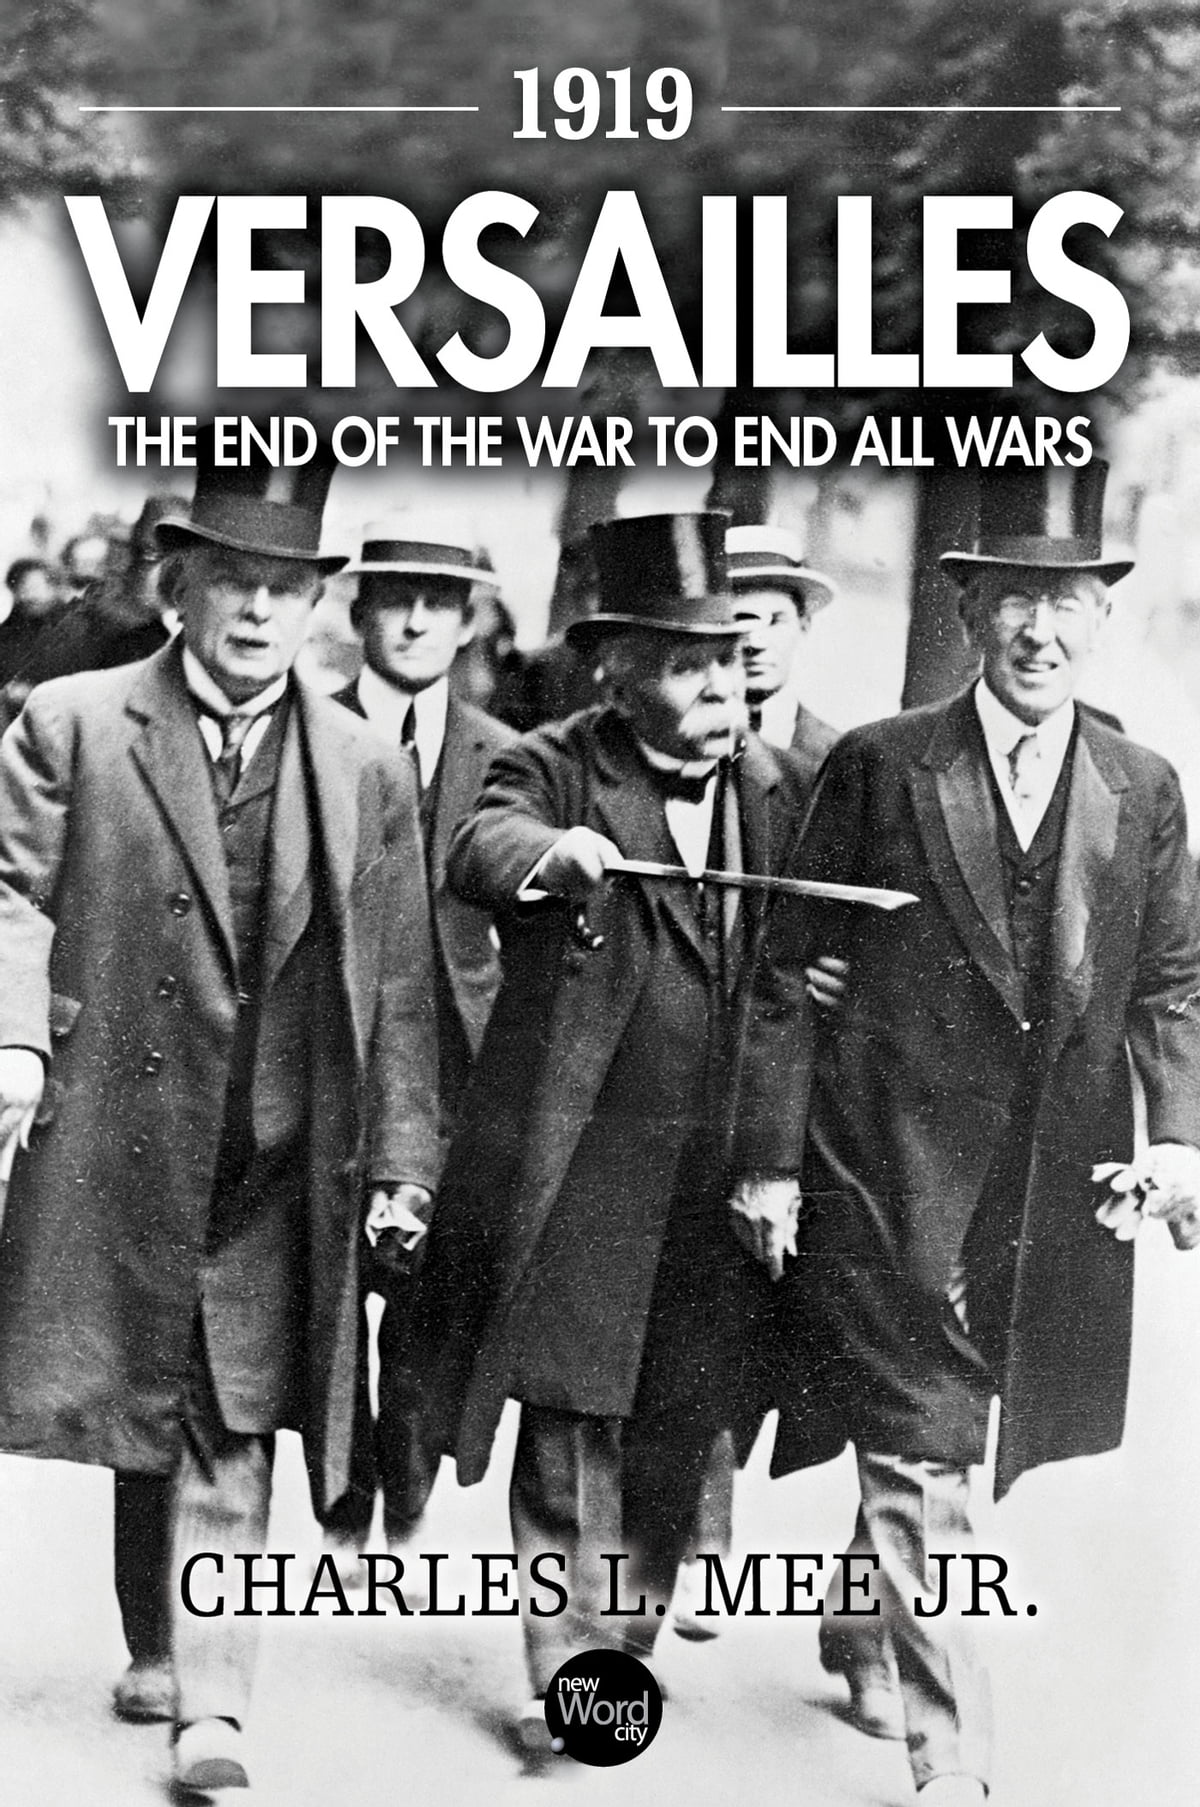 1919 Versailles: The End of the War to End All Wars eBook by Charles L. Mee  Jr. - 9781612307565 | Rakuten Kobo